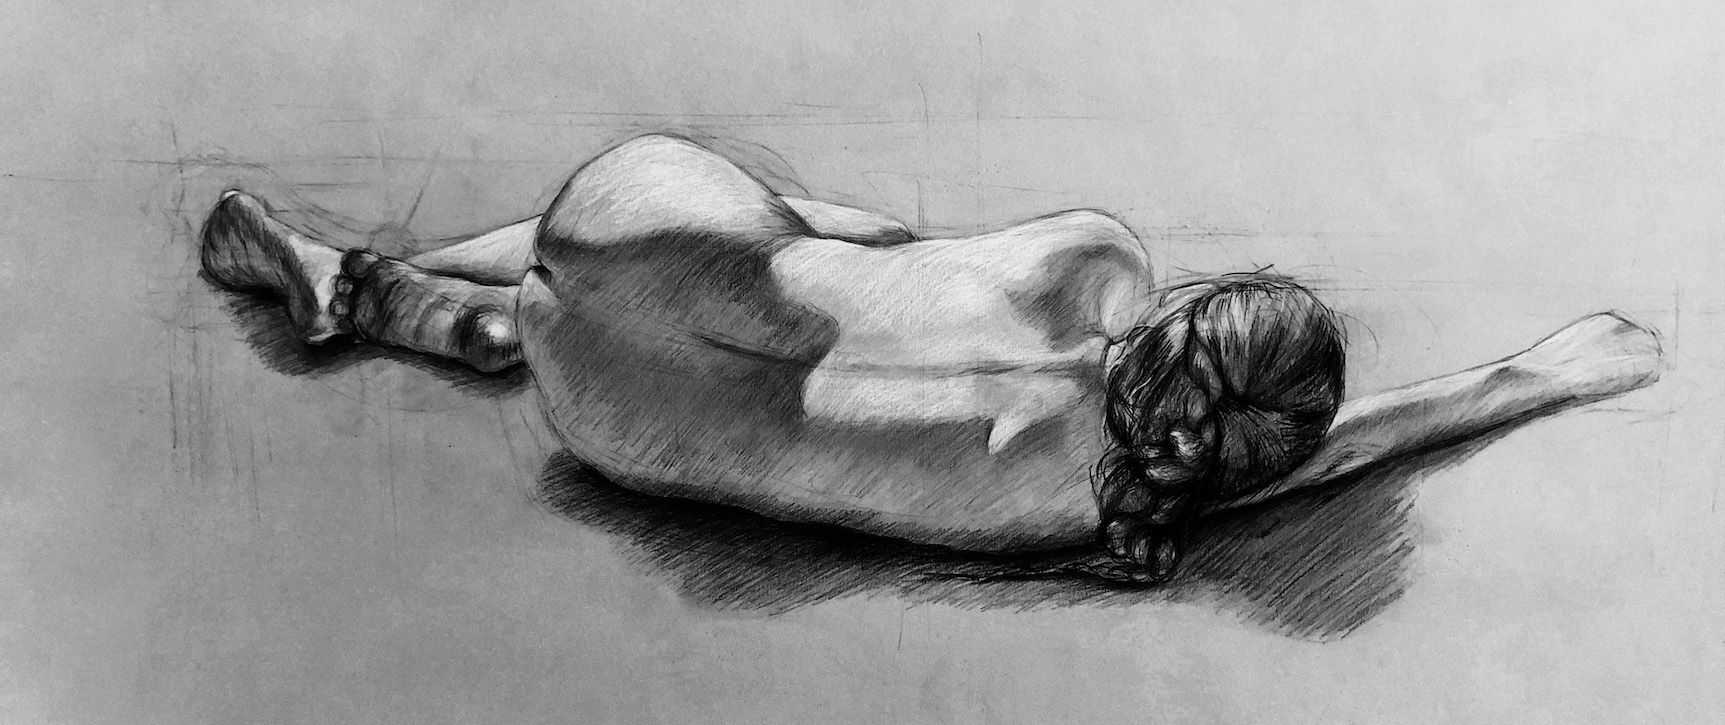 life drawing in charcoal of a woman lying on her side, by Hannah Kim